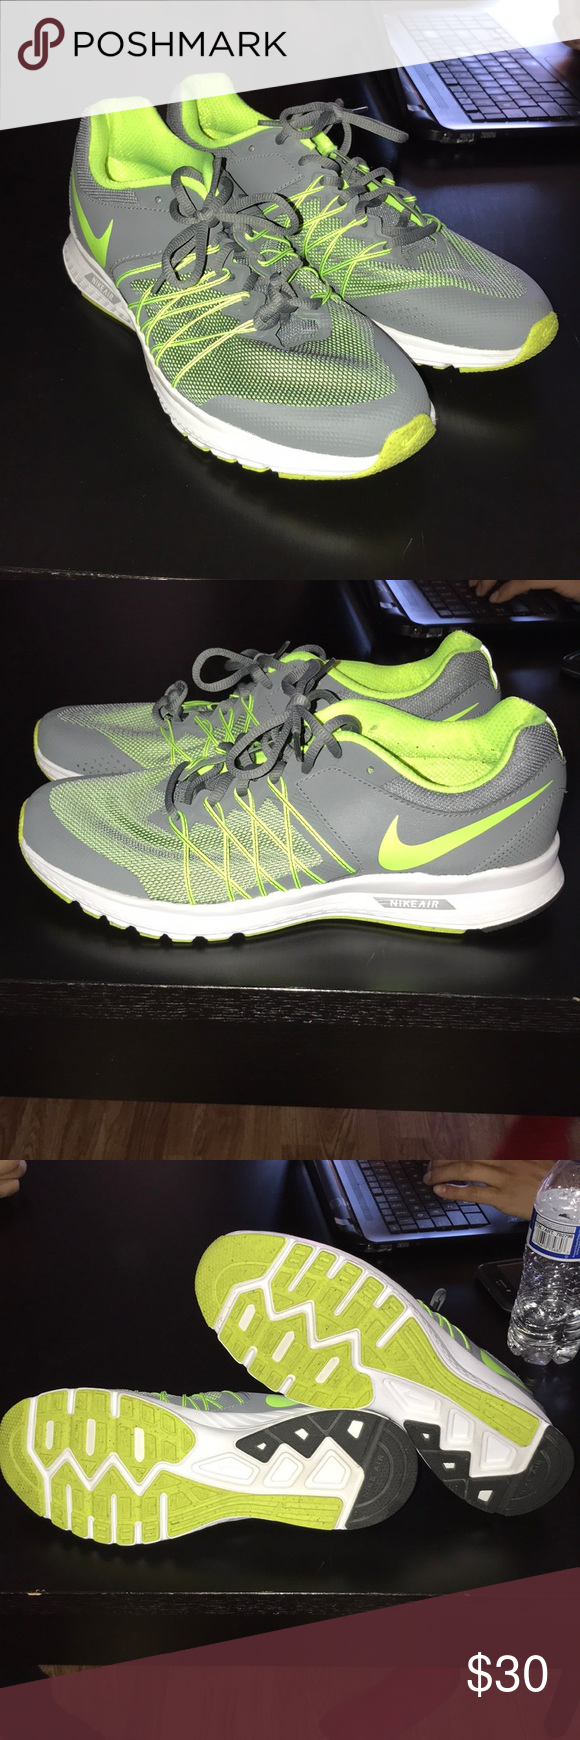 Barely used Nike Air Relentless 6